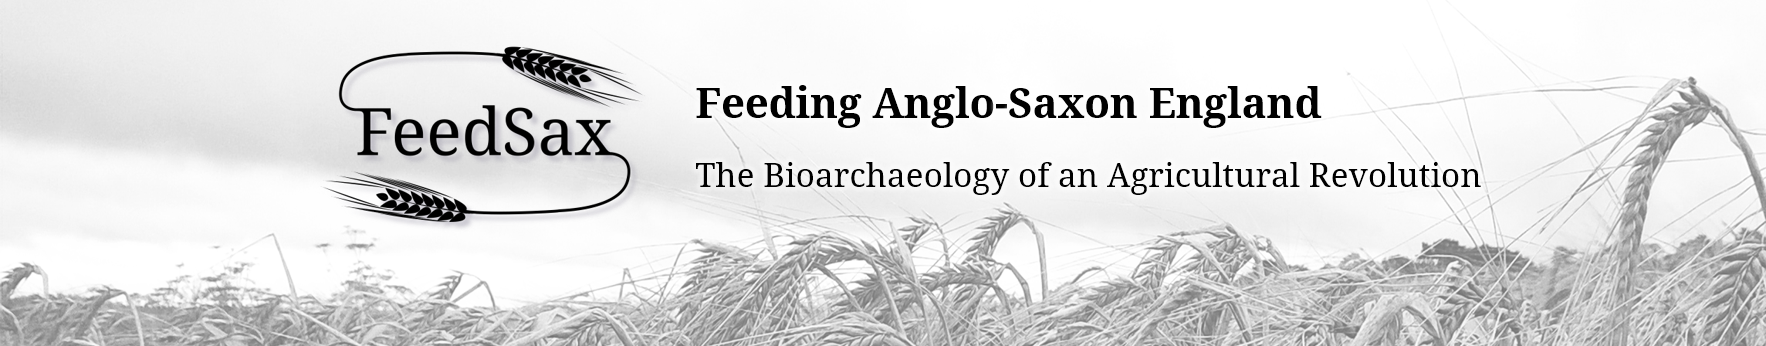 Feeding Anglo-Saxon England: The Bioarchaeology of an Agricultural Revolution